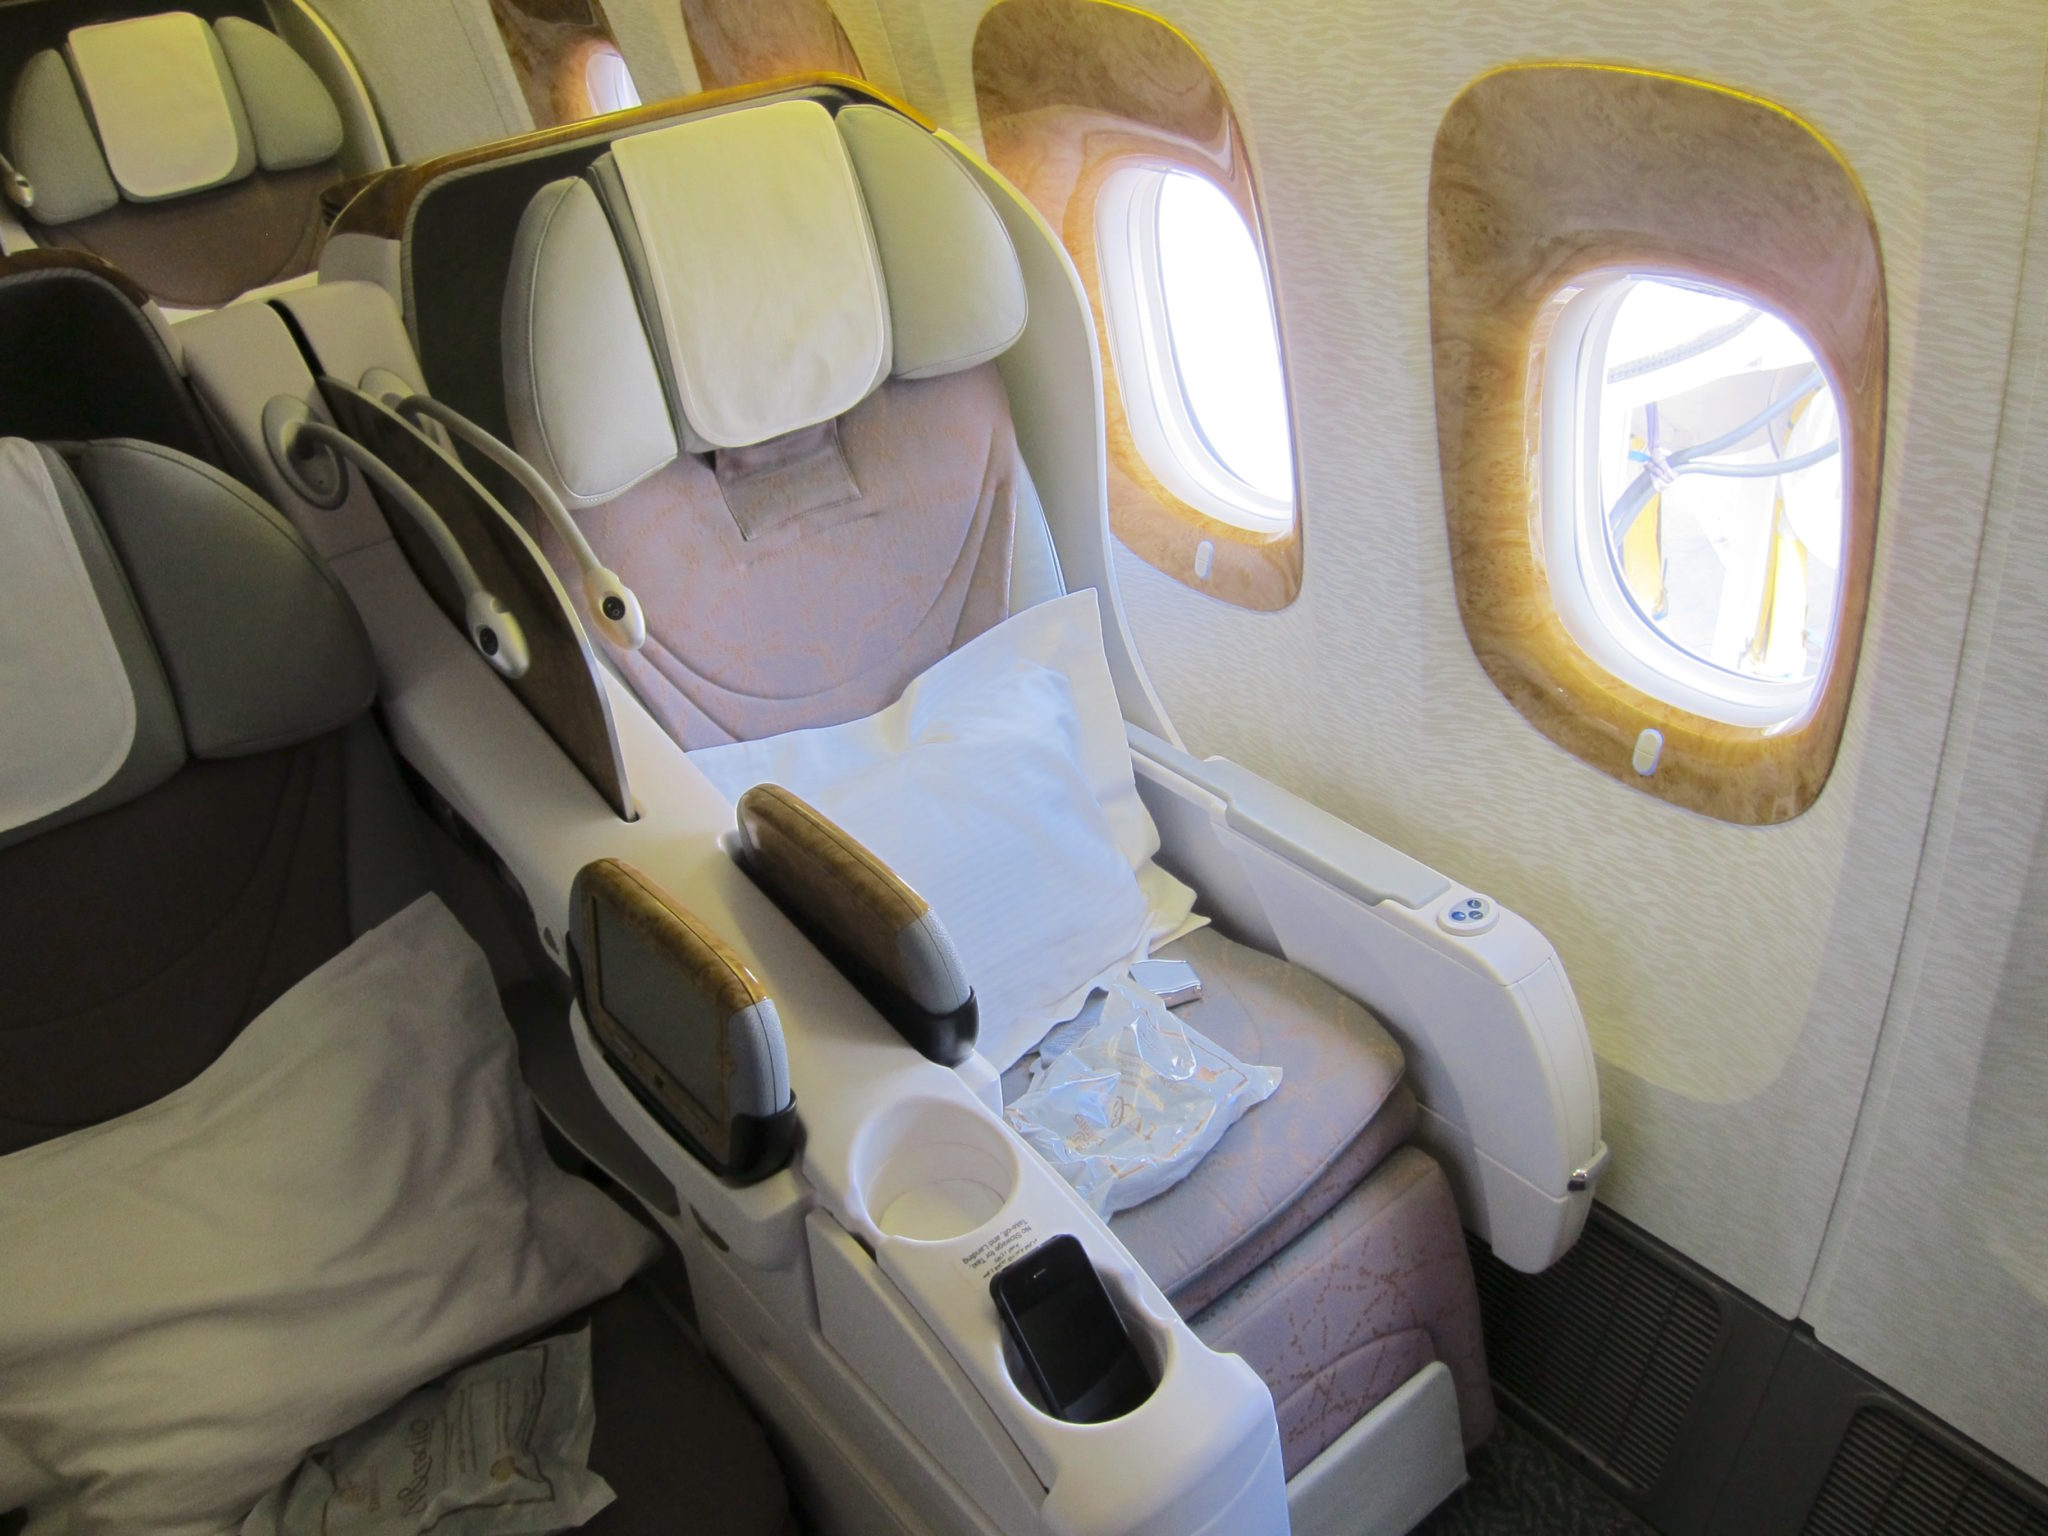 Emirates' existing 777 business class is narrow and in a 2-3-2 layout. Image: John Walton